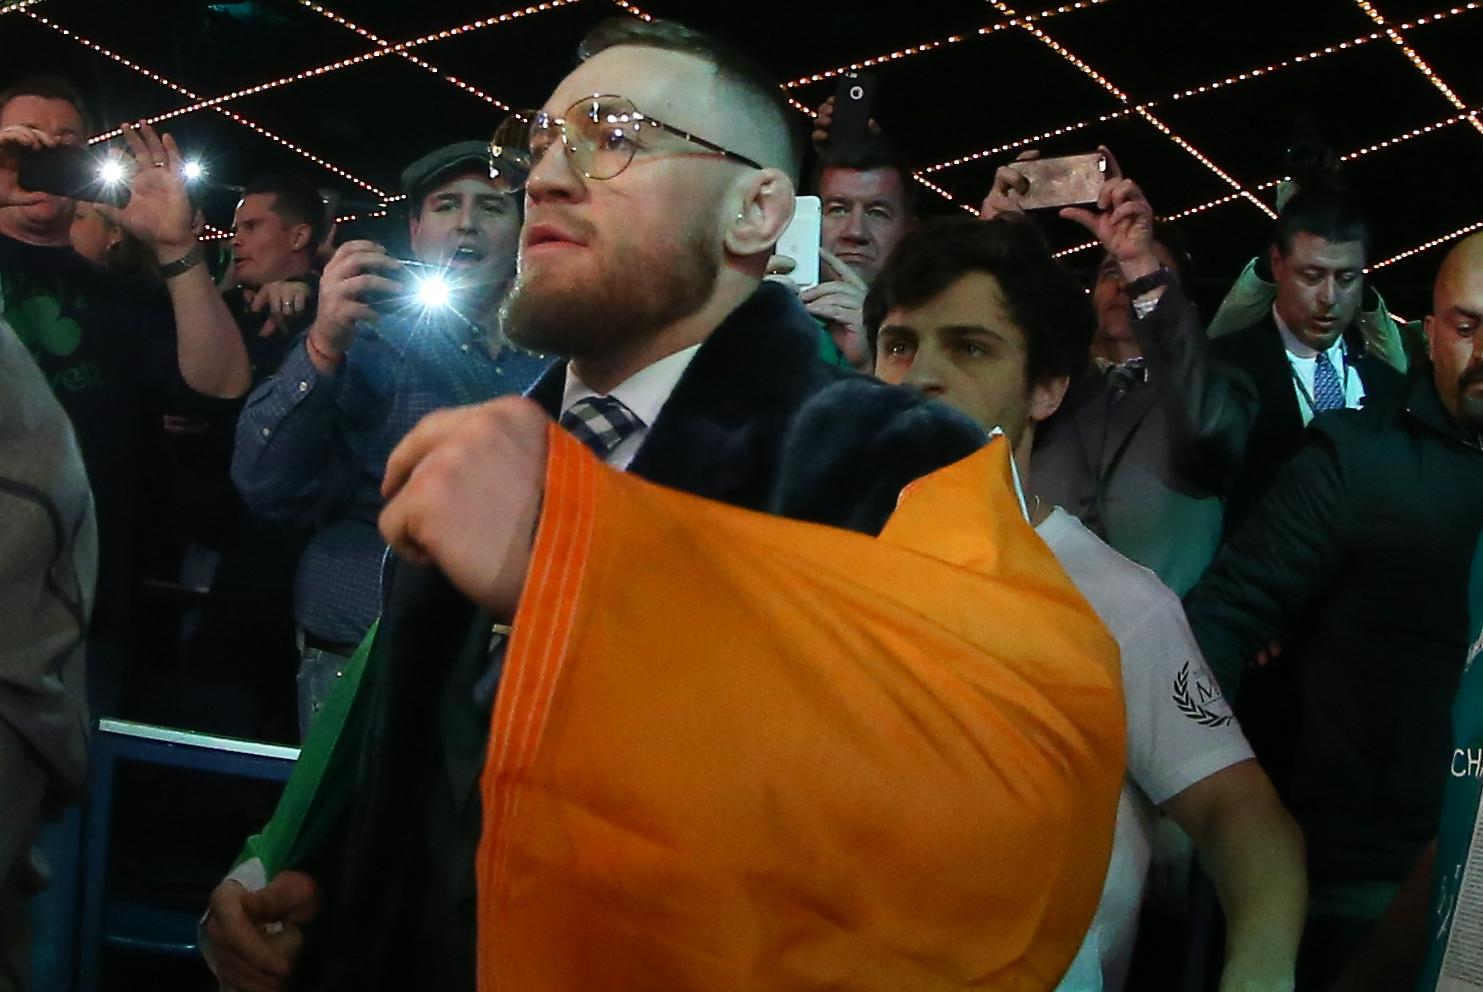 UFC star McGregor's fine for Vegas pre-bout fracas reduced